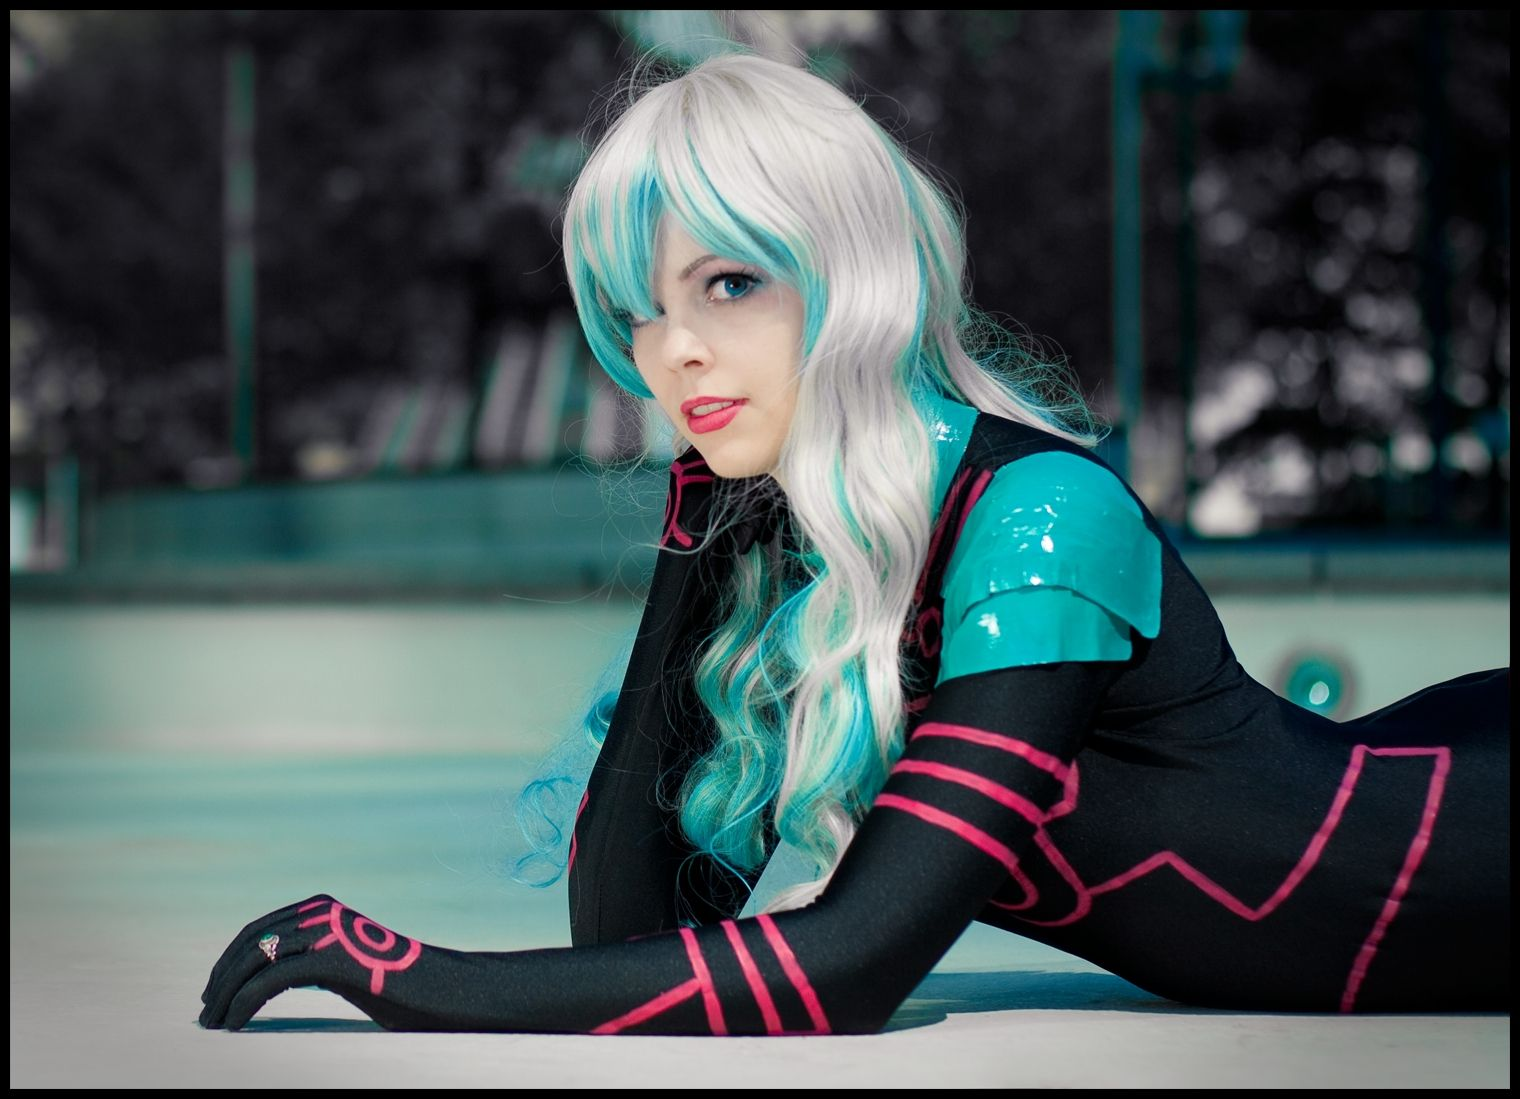 Nia anti spiral messenger calssara sexy cosplayers n cure worldcosplay is a free website for submitting cosplay photos and is used by cosplayers in countries all around the world solutioingenieria Images